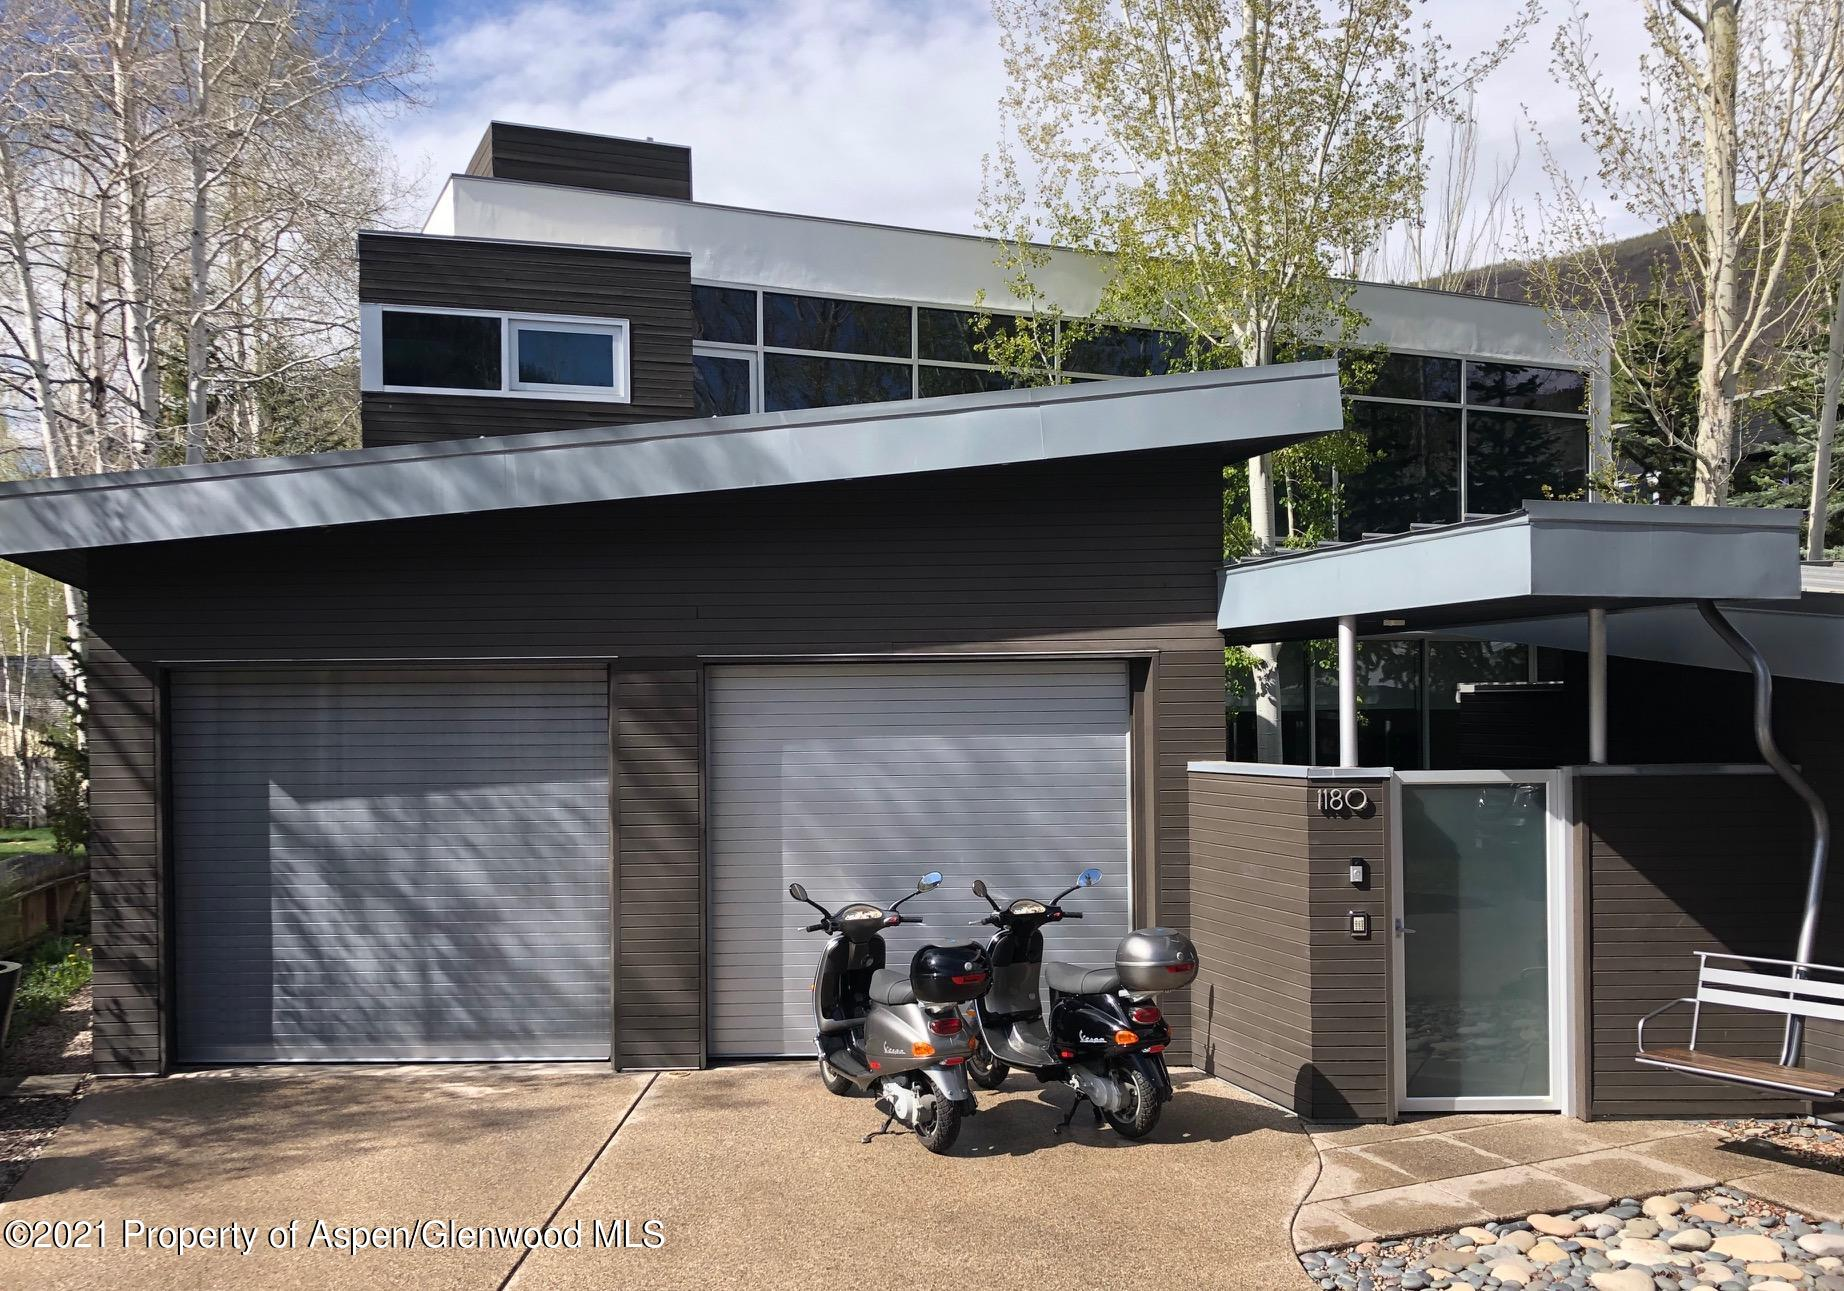 Fully furnished in-town ''turn-key'' modern single family, private gated home. Built entirely above grade the home may be expandable as there is approx. 900 sf of partially excavated basement.  The bedrooms have views of Aspen Mountain and in-suite bathrooms.  Private courtyard offers a stainless steel spa, cabana, fire pit, BBQ, and snow melt. Large commercially equipped gym opens to the courtyard.  Heated one car garage and a two car driveway with snow melt.  Southern exposure creates lots of light and snow/ice does not accumulate in front or in the courtyard.  Toto washlet toilets, programmable caseta lighting, easy to use audio visual and complete alarm system with cameras allow this single family home to be worry-free and low  maintenance.